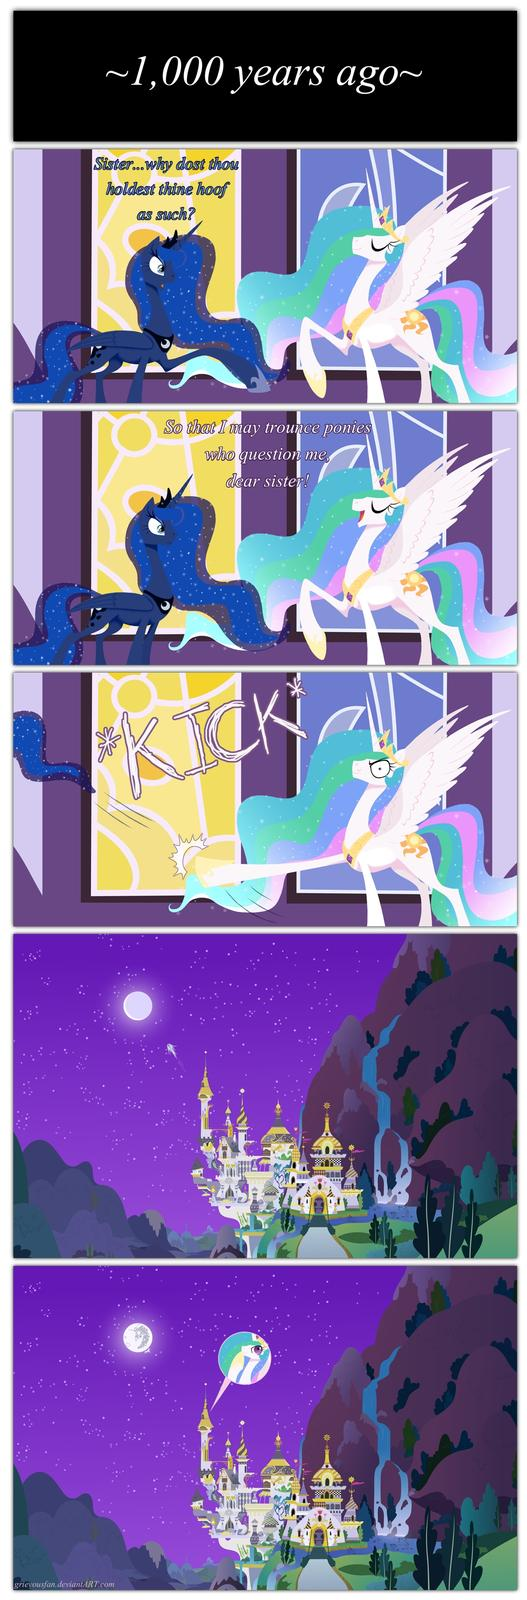 Luna's Banishment: How It Really Happened